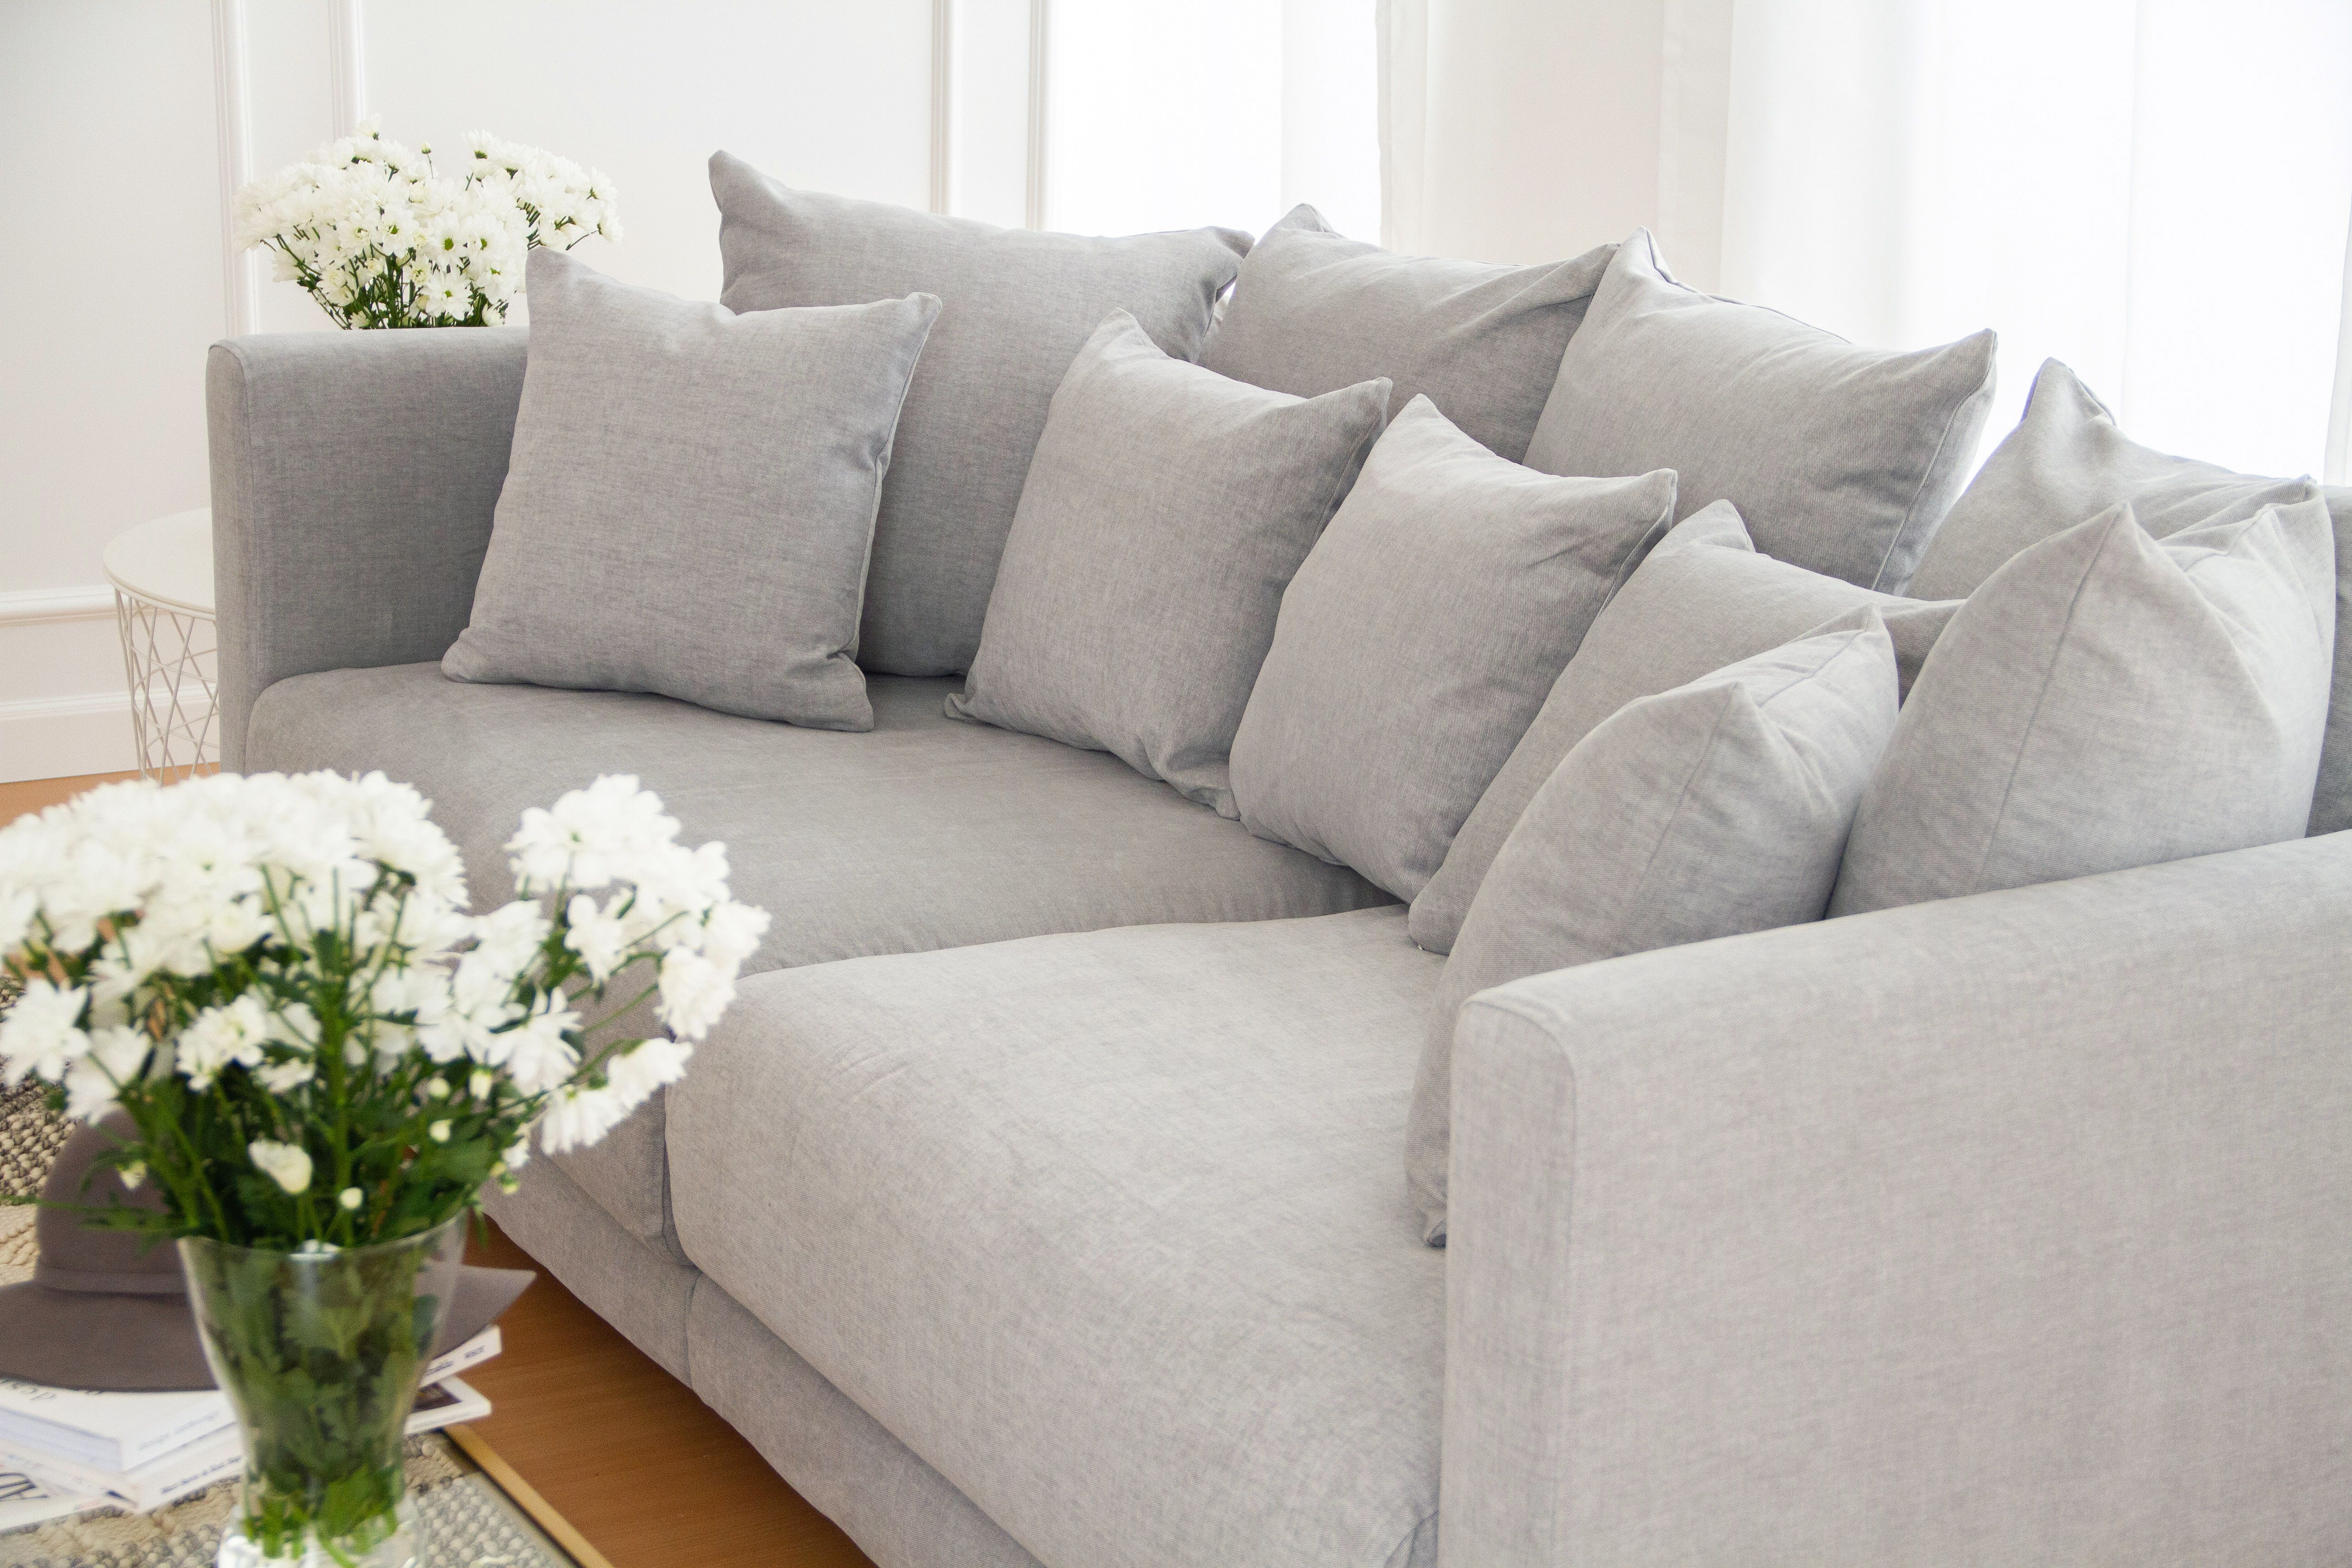 Custom Slipcovers For Ikea Stockholm 2017 Sofa In Our Madison Cotton Fabric Our New Durable Washable Cottons Are Super Comf Alte Wohnungen Wohnzimmer Wohnung